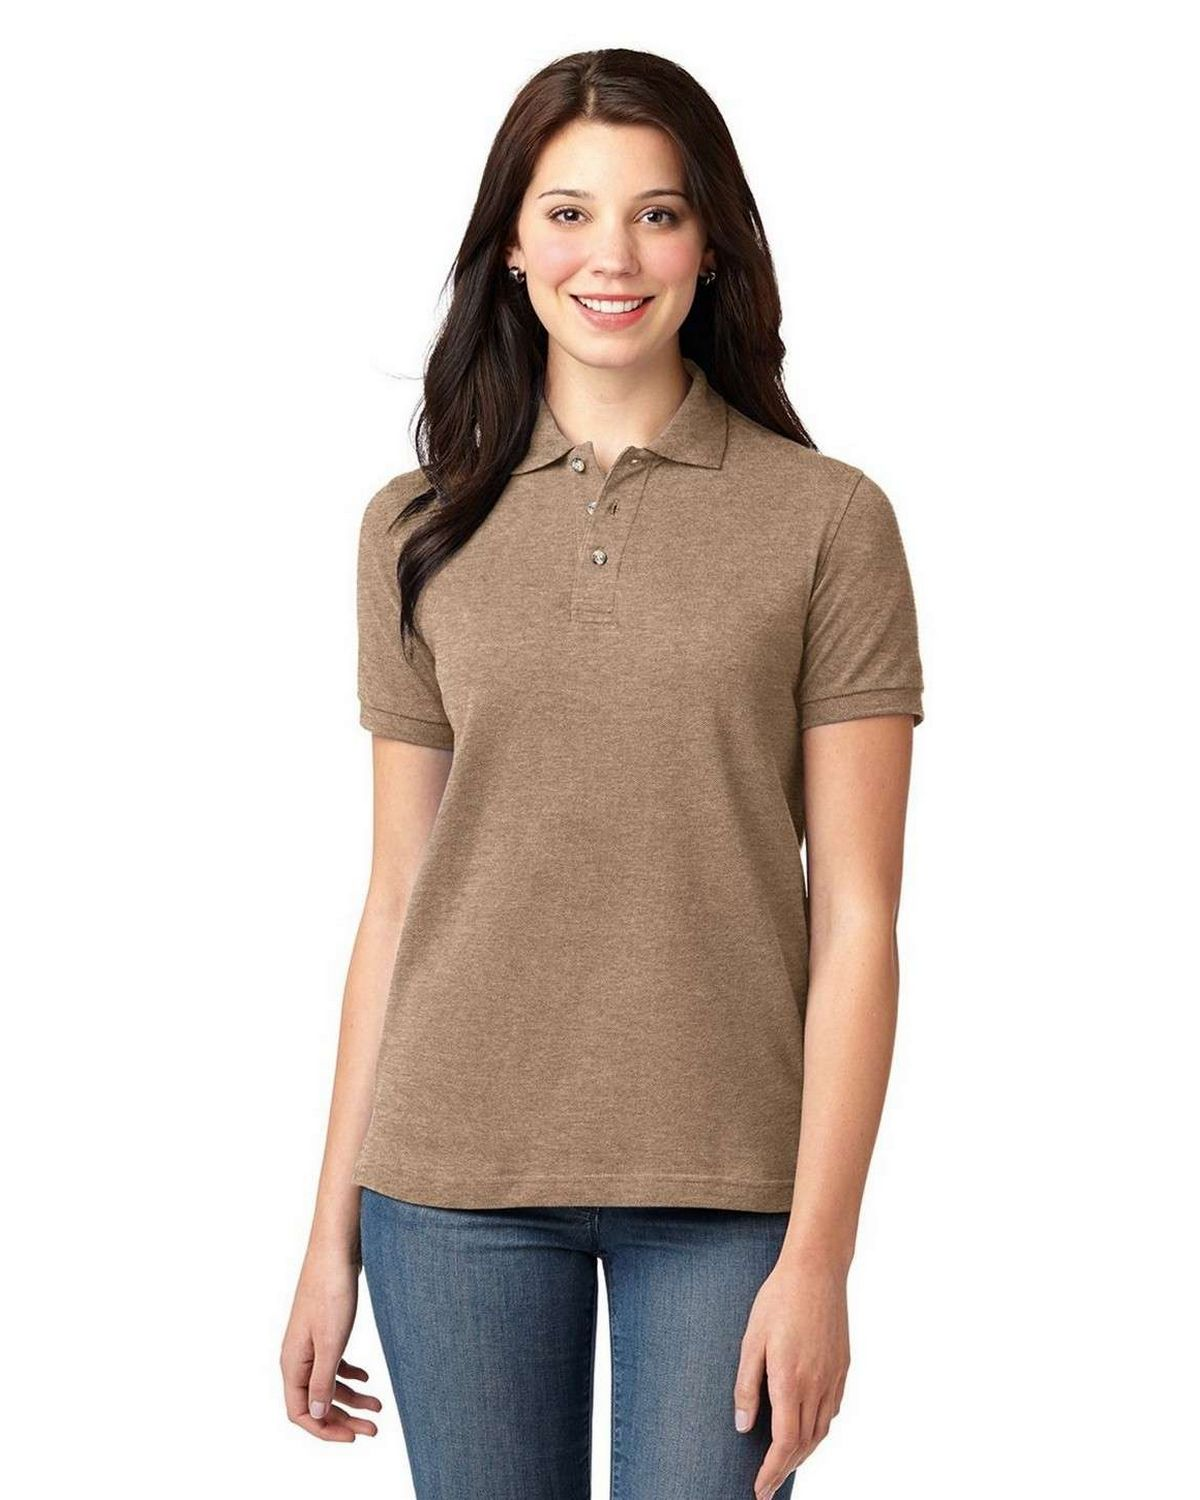 Port Authority L420 Ladies Pique Knit Polo